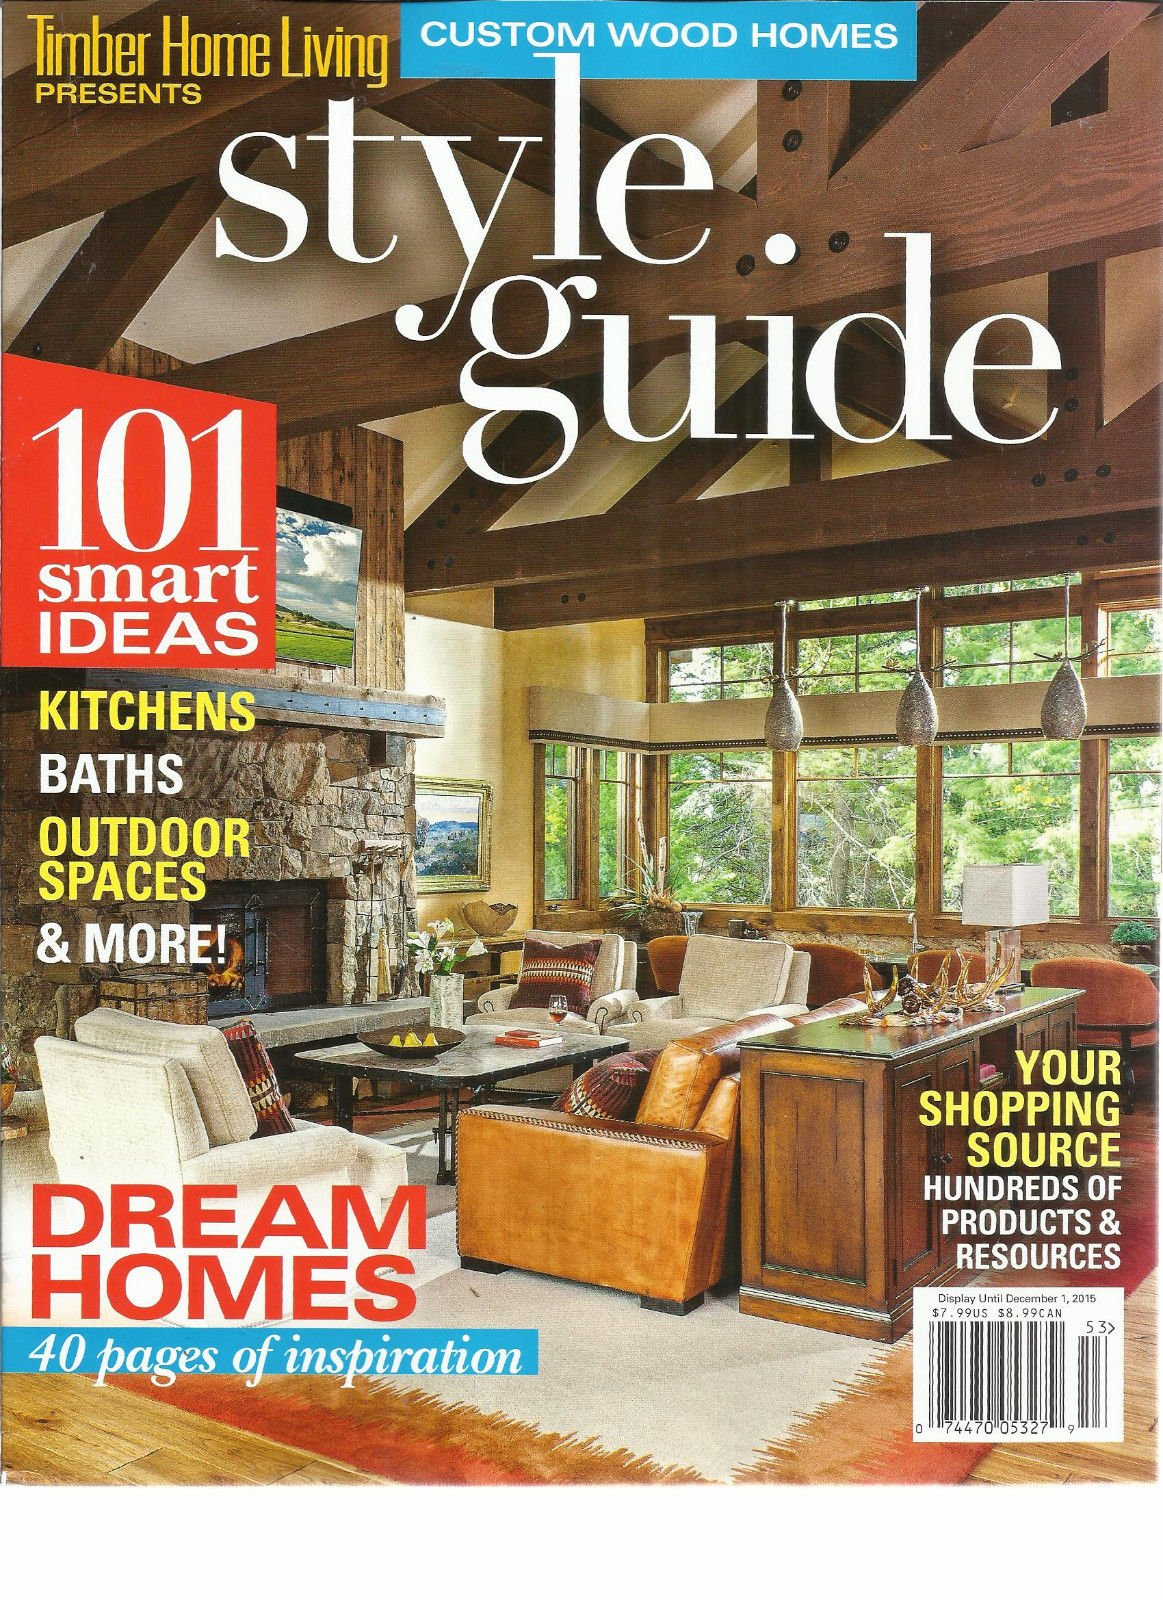 CUSTOM WOOD HOMES, TIMBER HOME LIVING STYLE GUIDE, FALL, 2015 ~